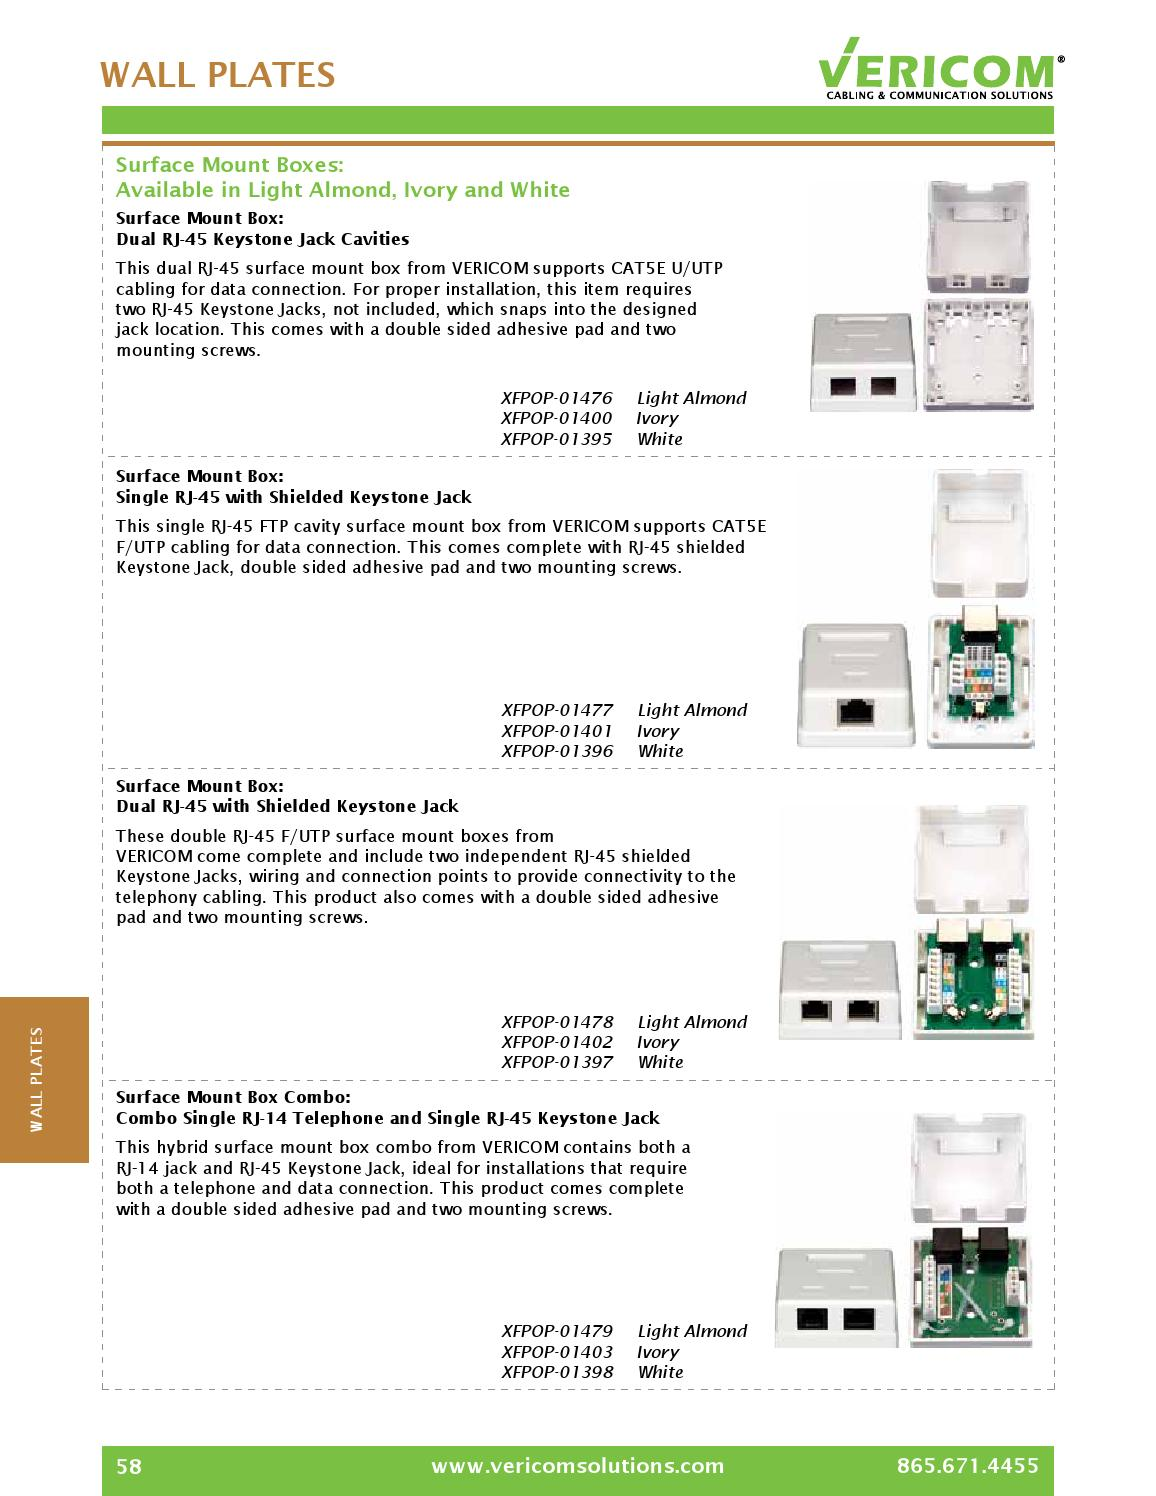 vericom global solutions product catalog by vericom global solutions vericom global solutions product catalog by vericom global solutions issuu